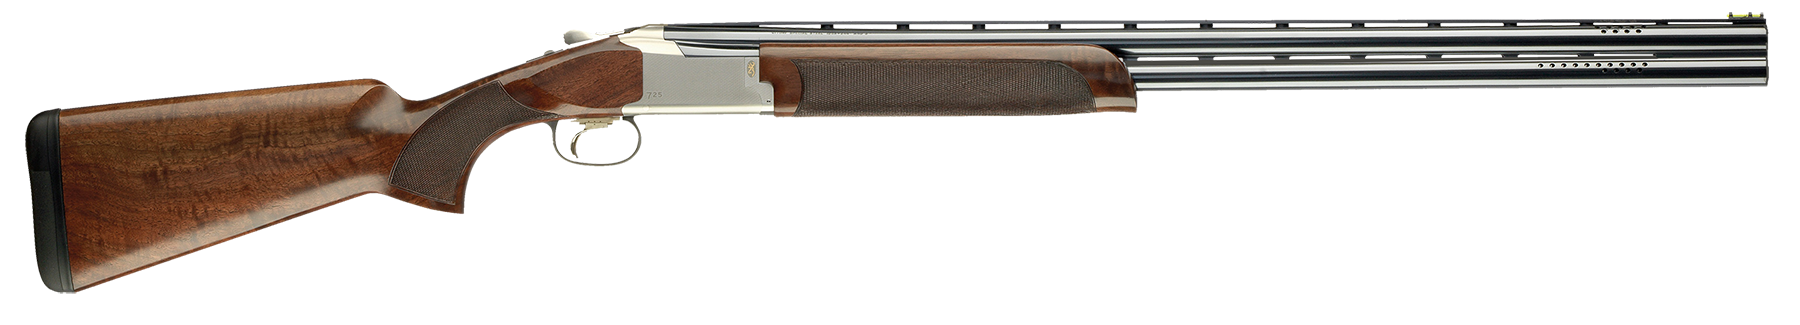 Browning Citori 725 Sporting Over/Under Shotgun 3'' 20 Gauge 32'' Silver Nitride Steel/Blued Barrel - Grade III Gloss/Grade IV Walnut